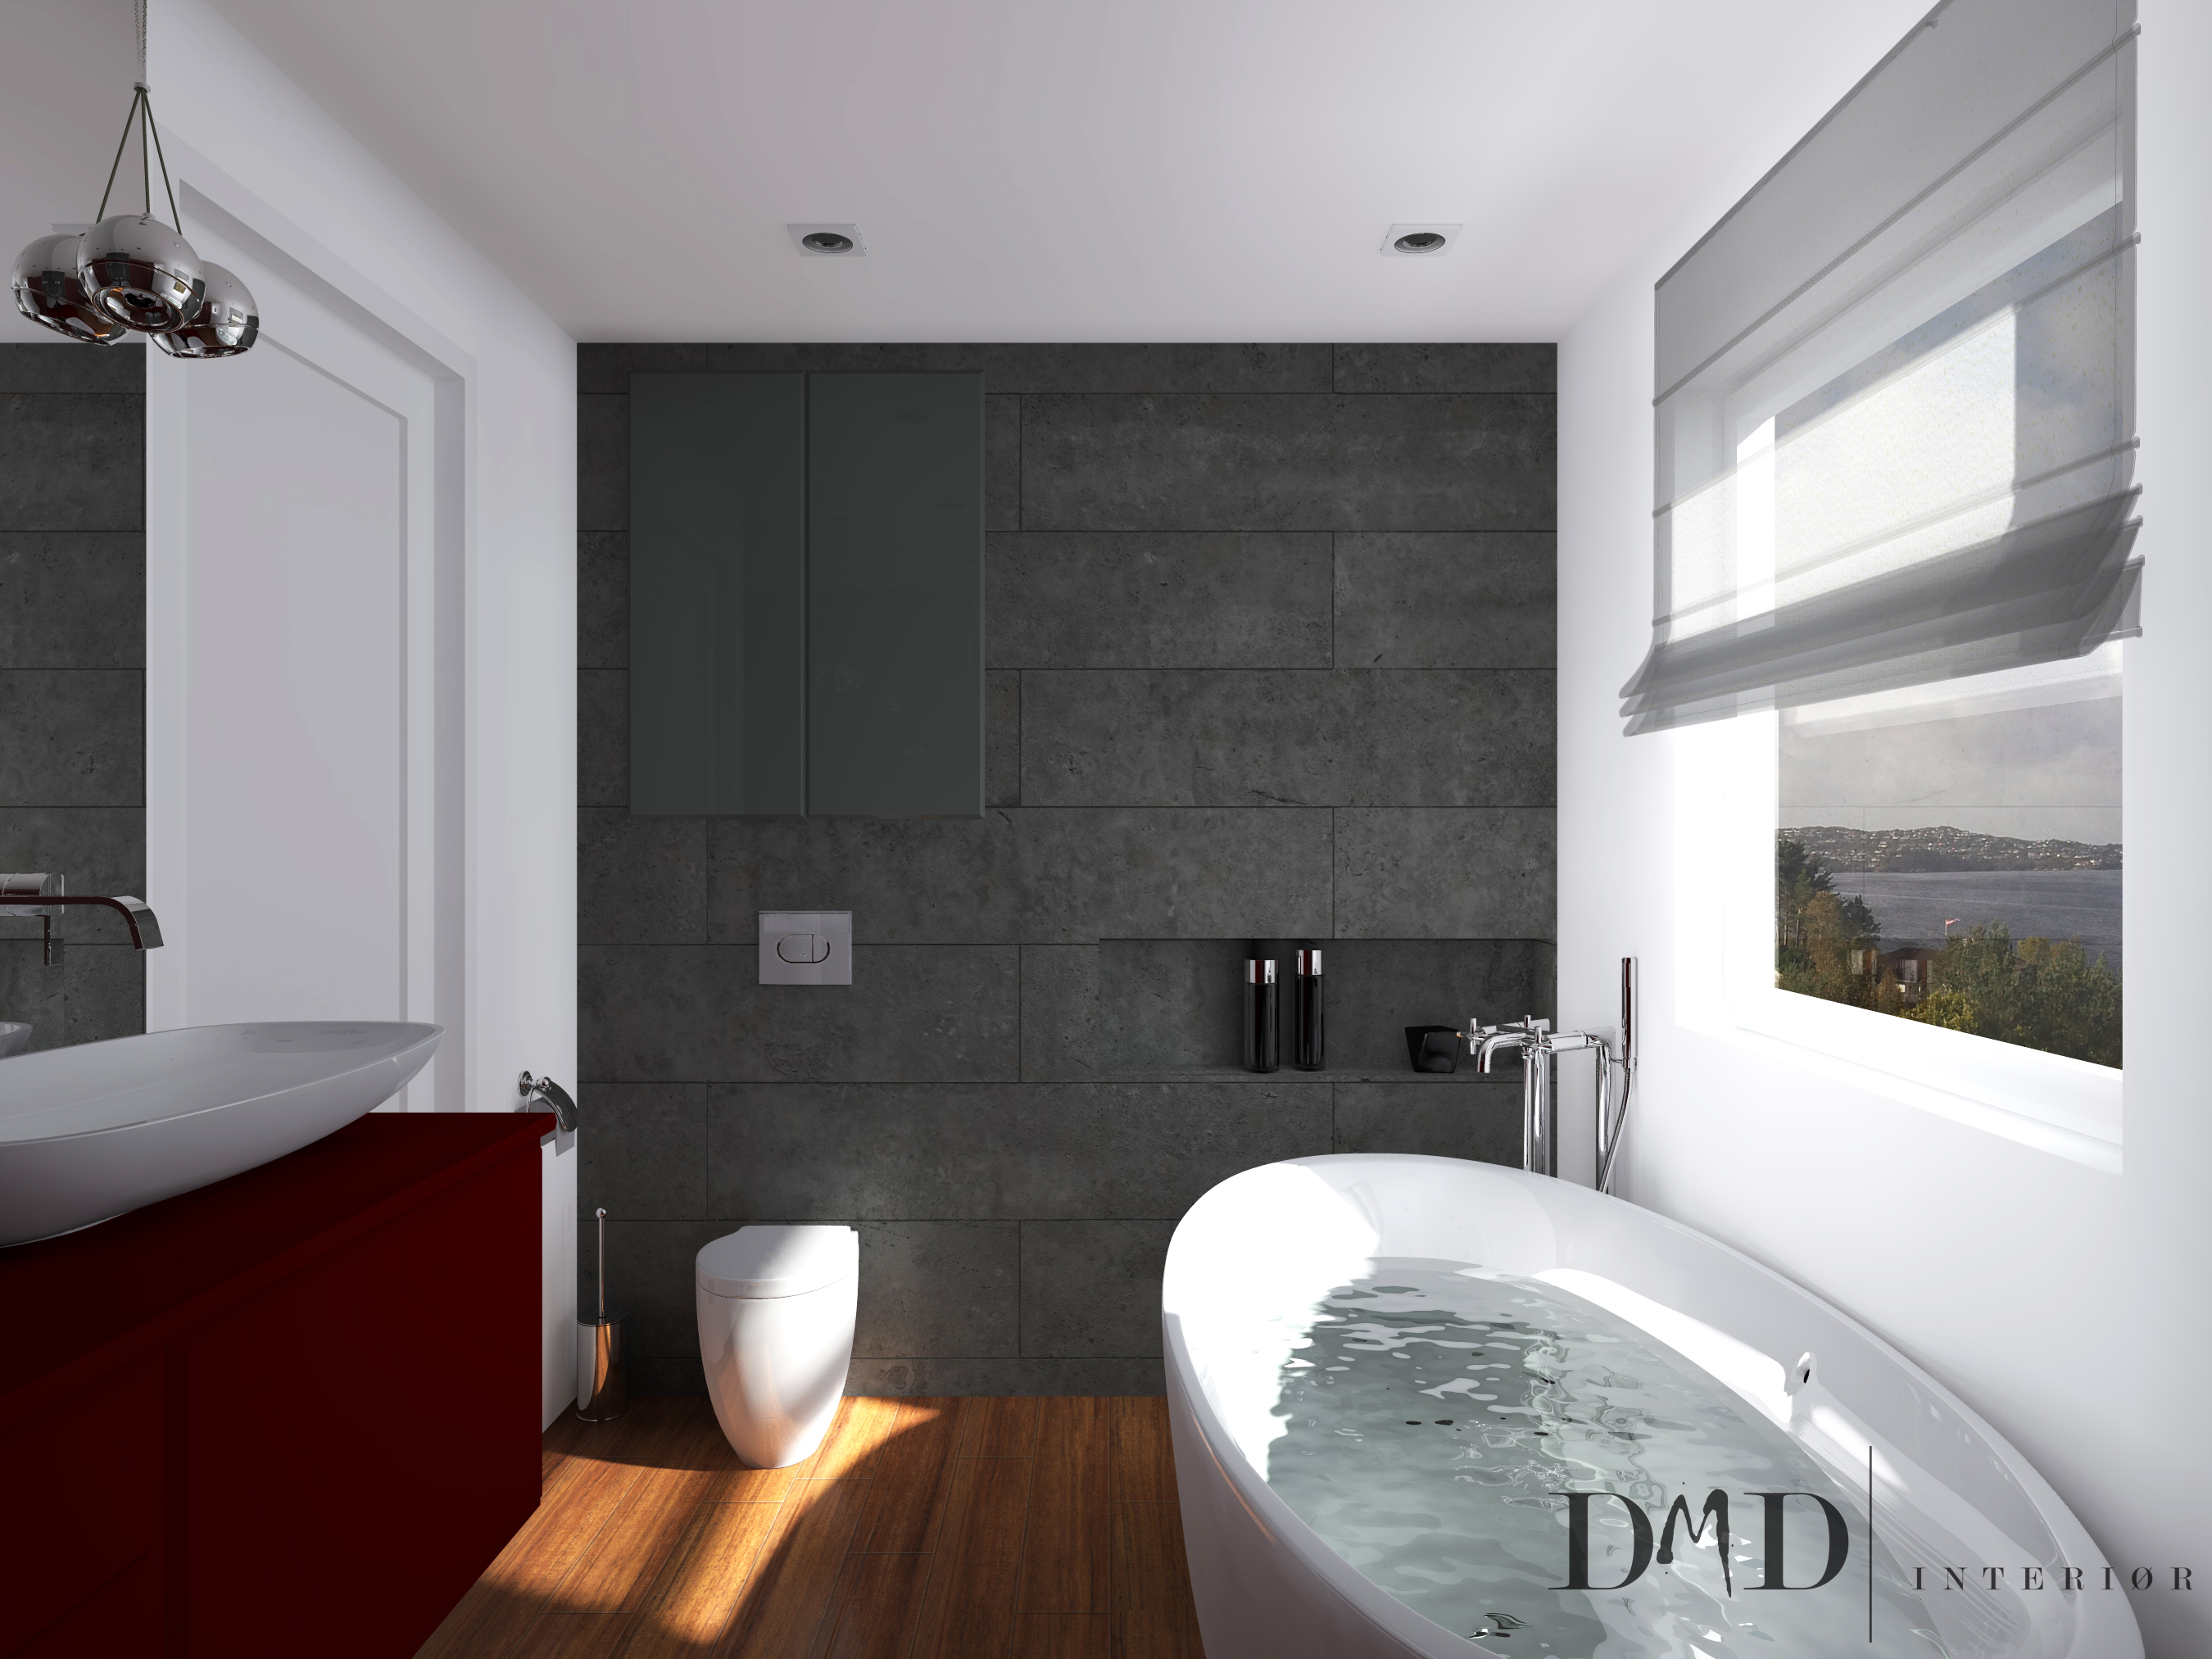 stavanger bathroom dmd interior design